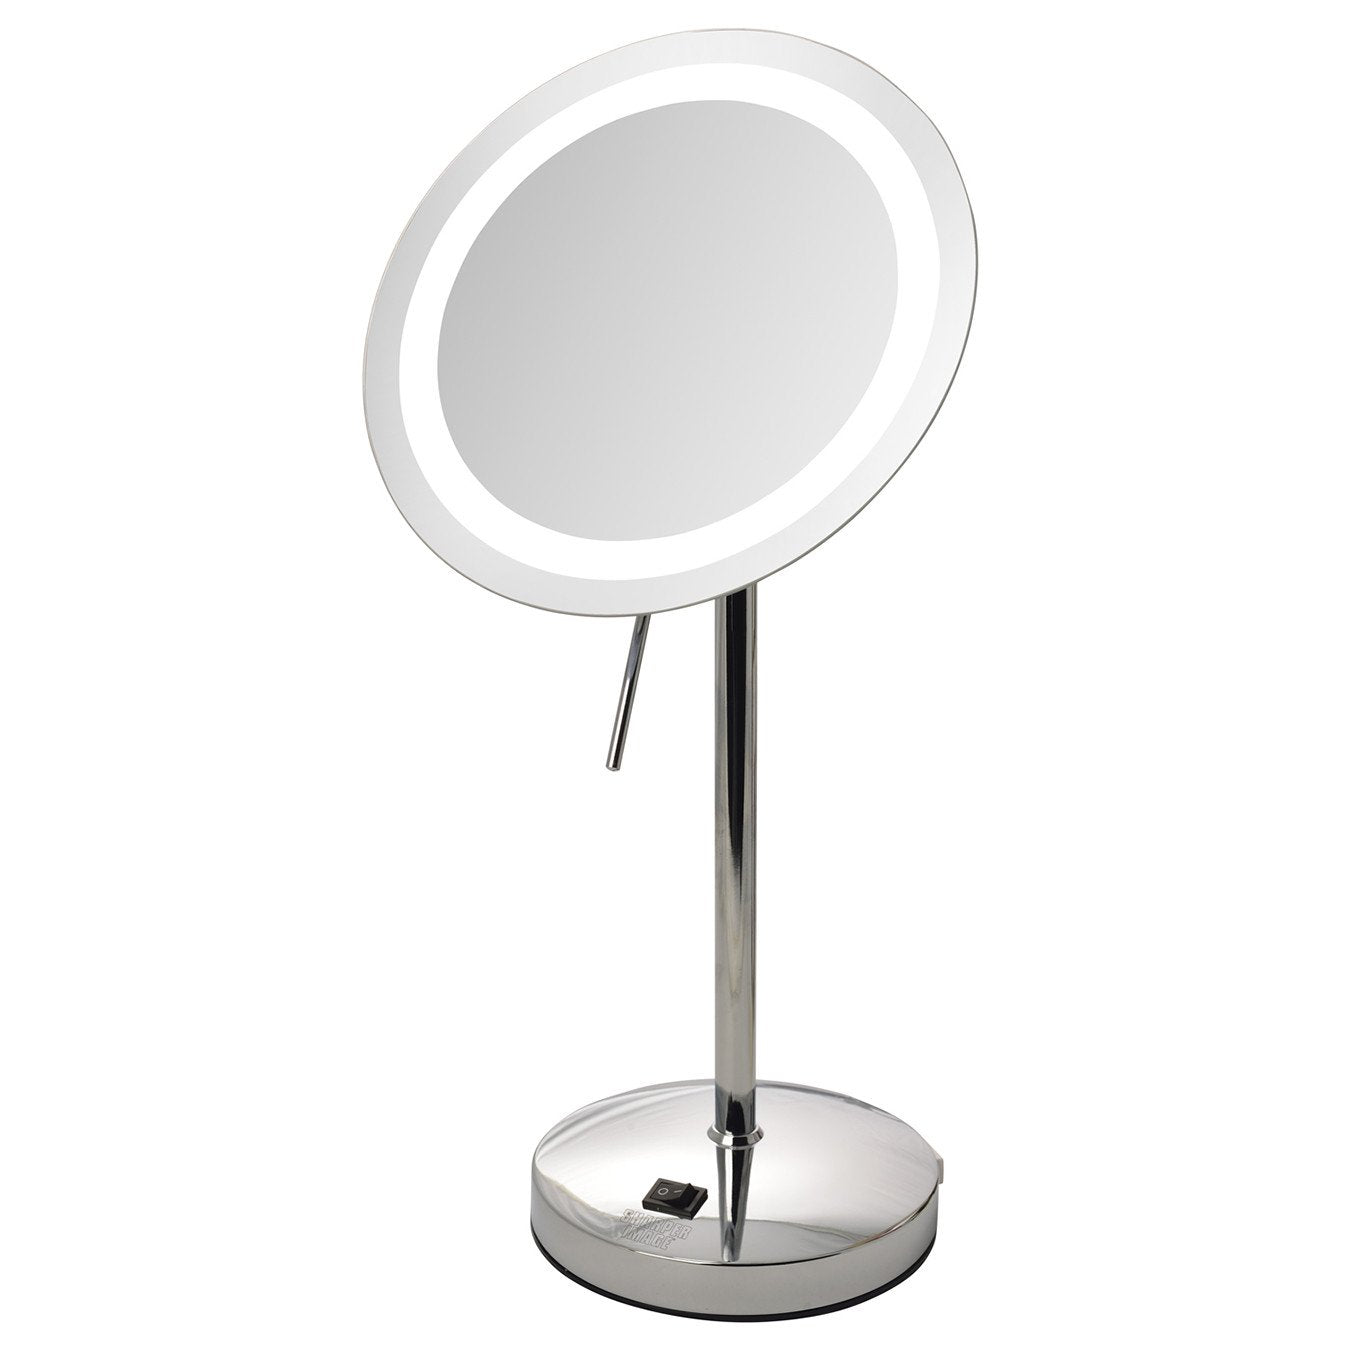 Sharper Image 8 5 Quot 8x Led Lighted Mirror Jerdon Style